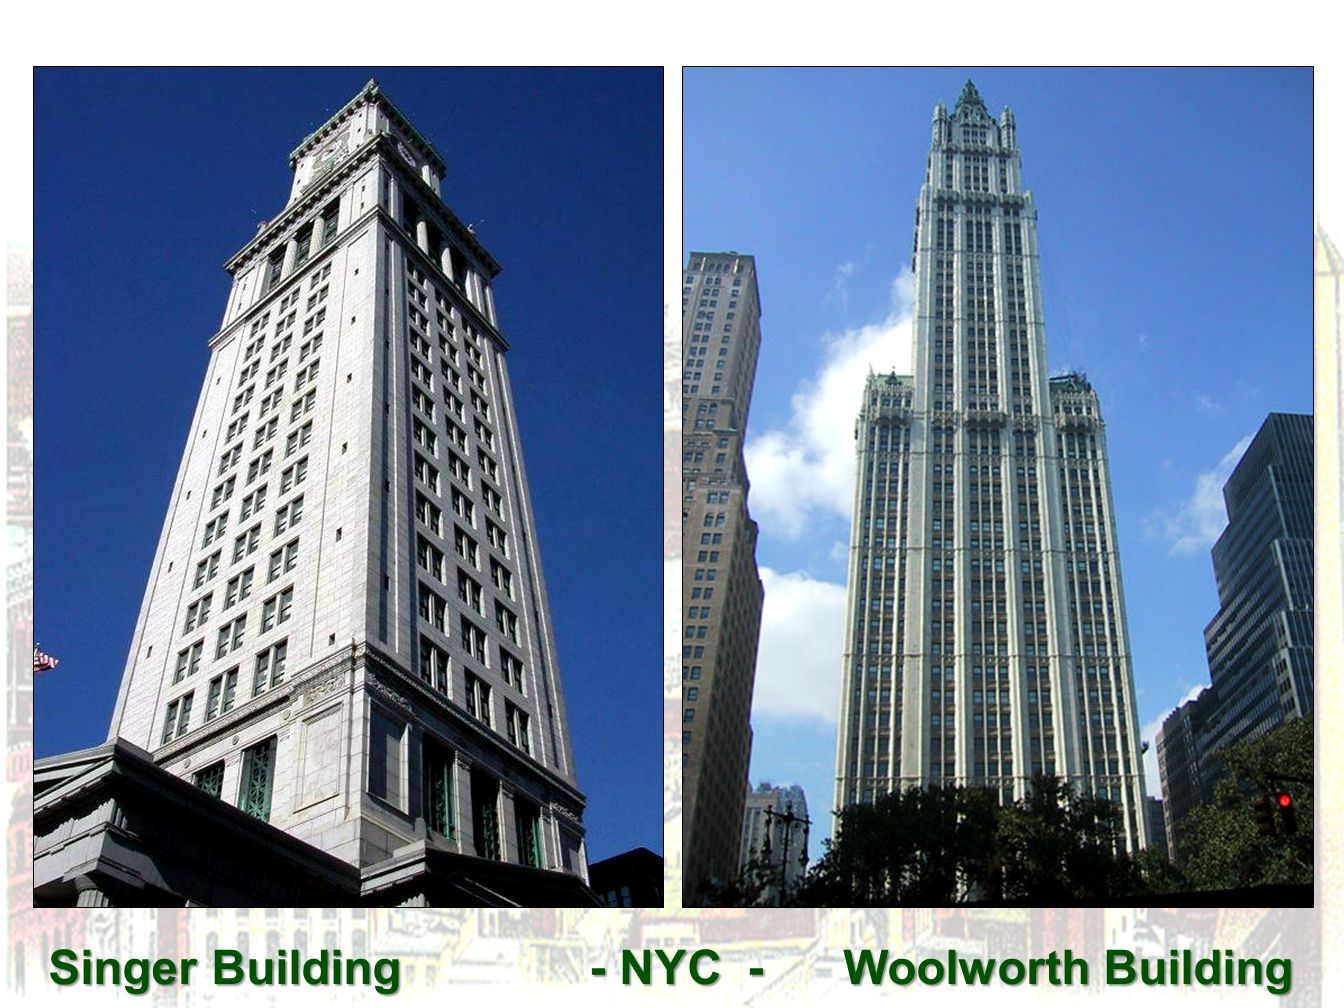 Singer Building - NYC - Woolworth Building